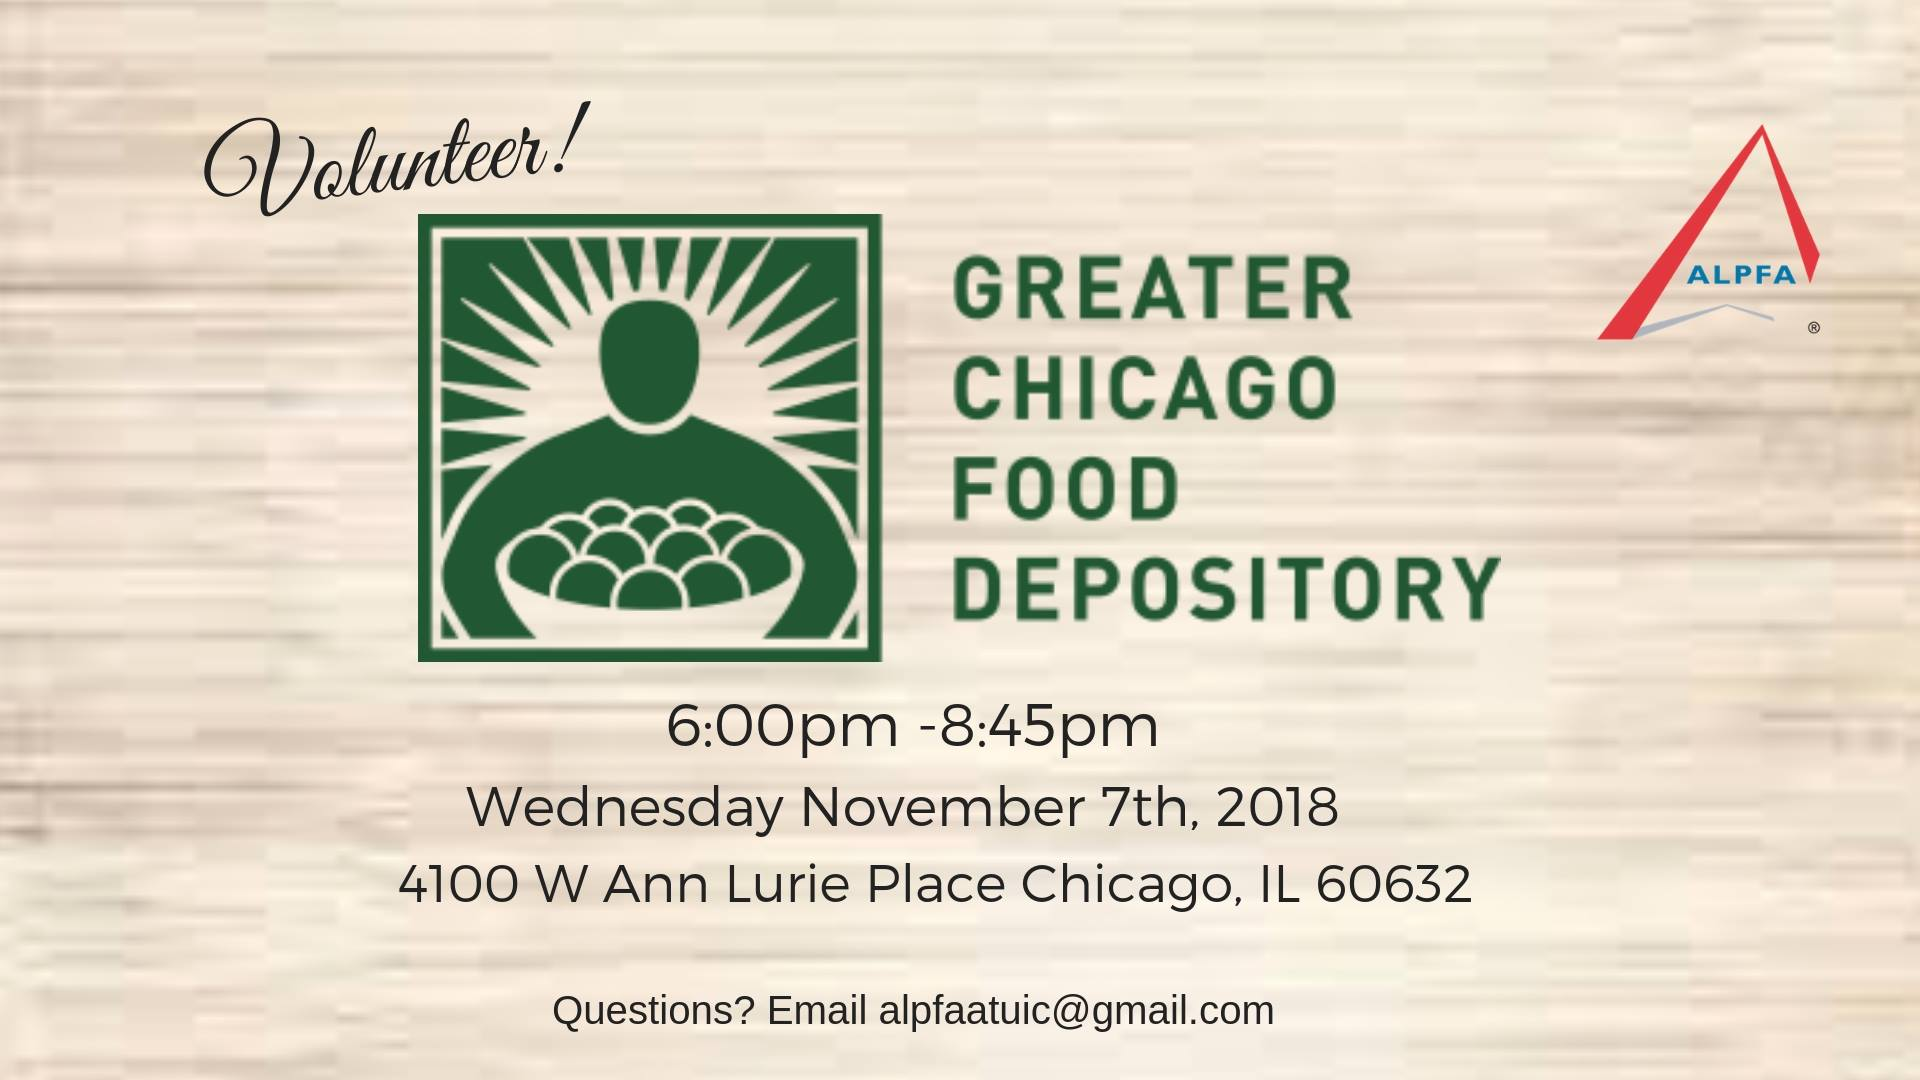 greater chicago food depository.jpg